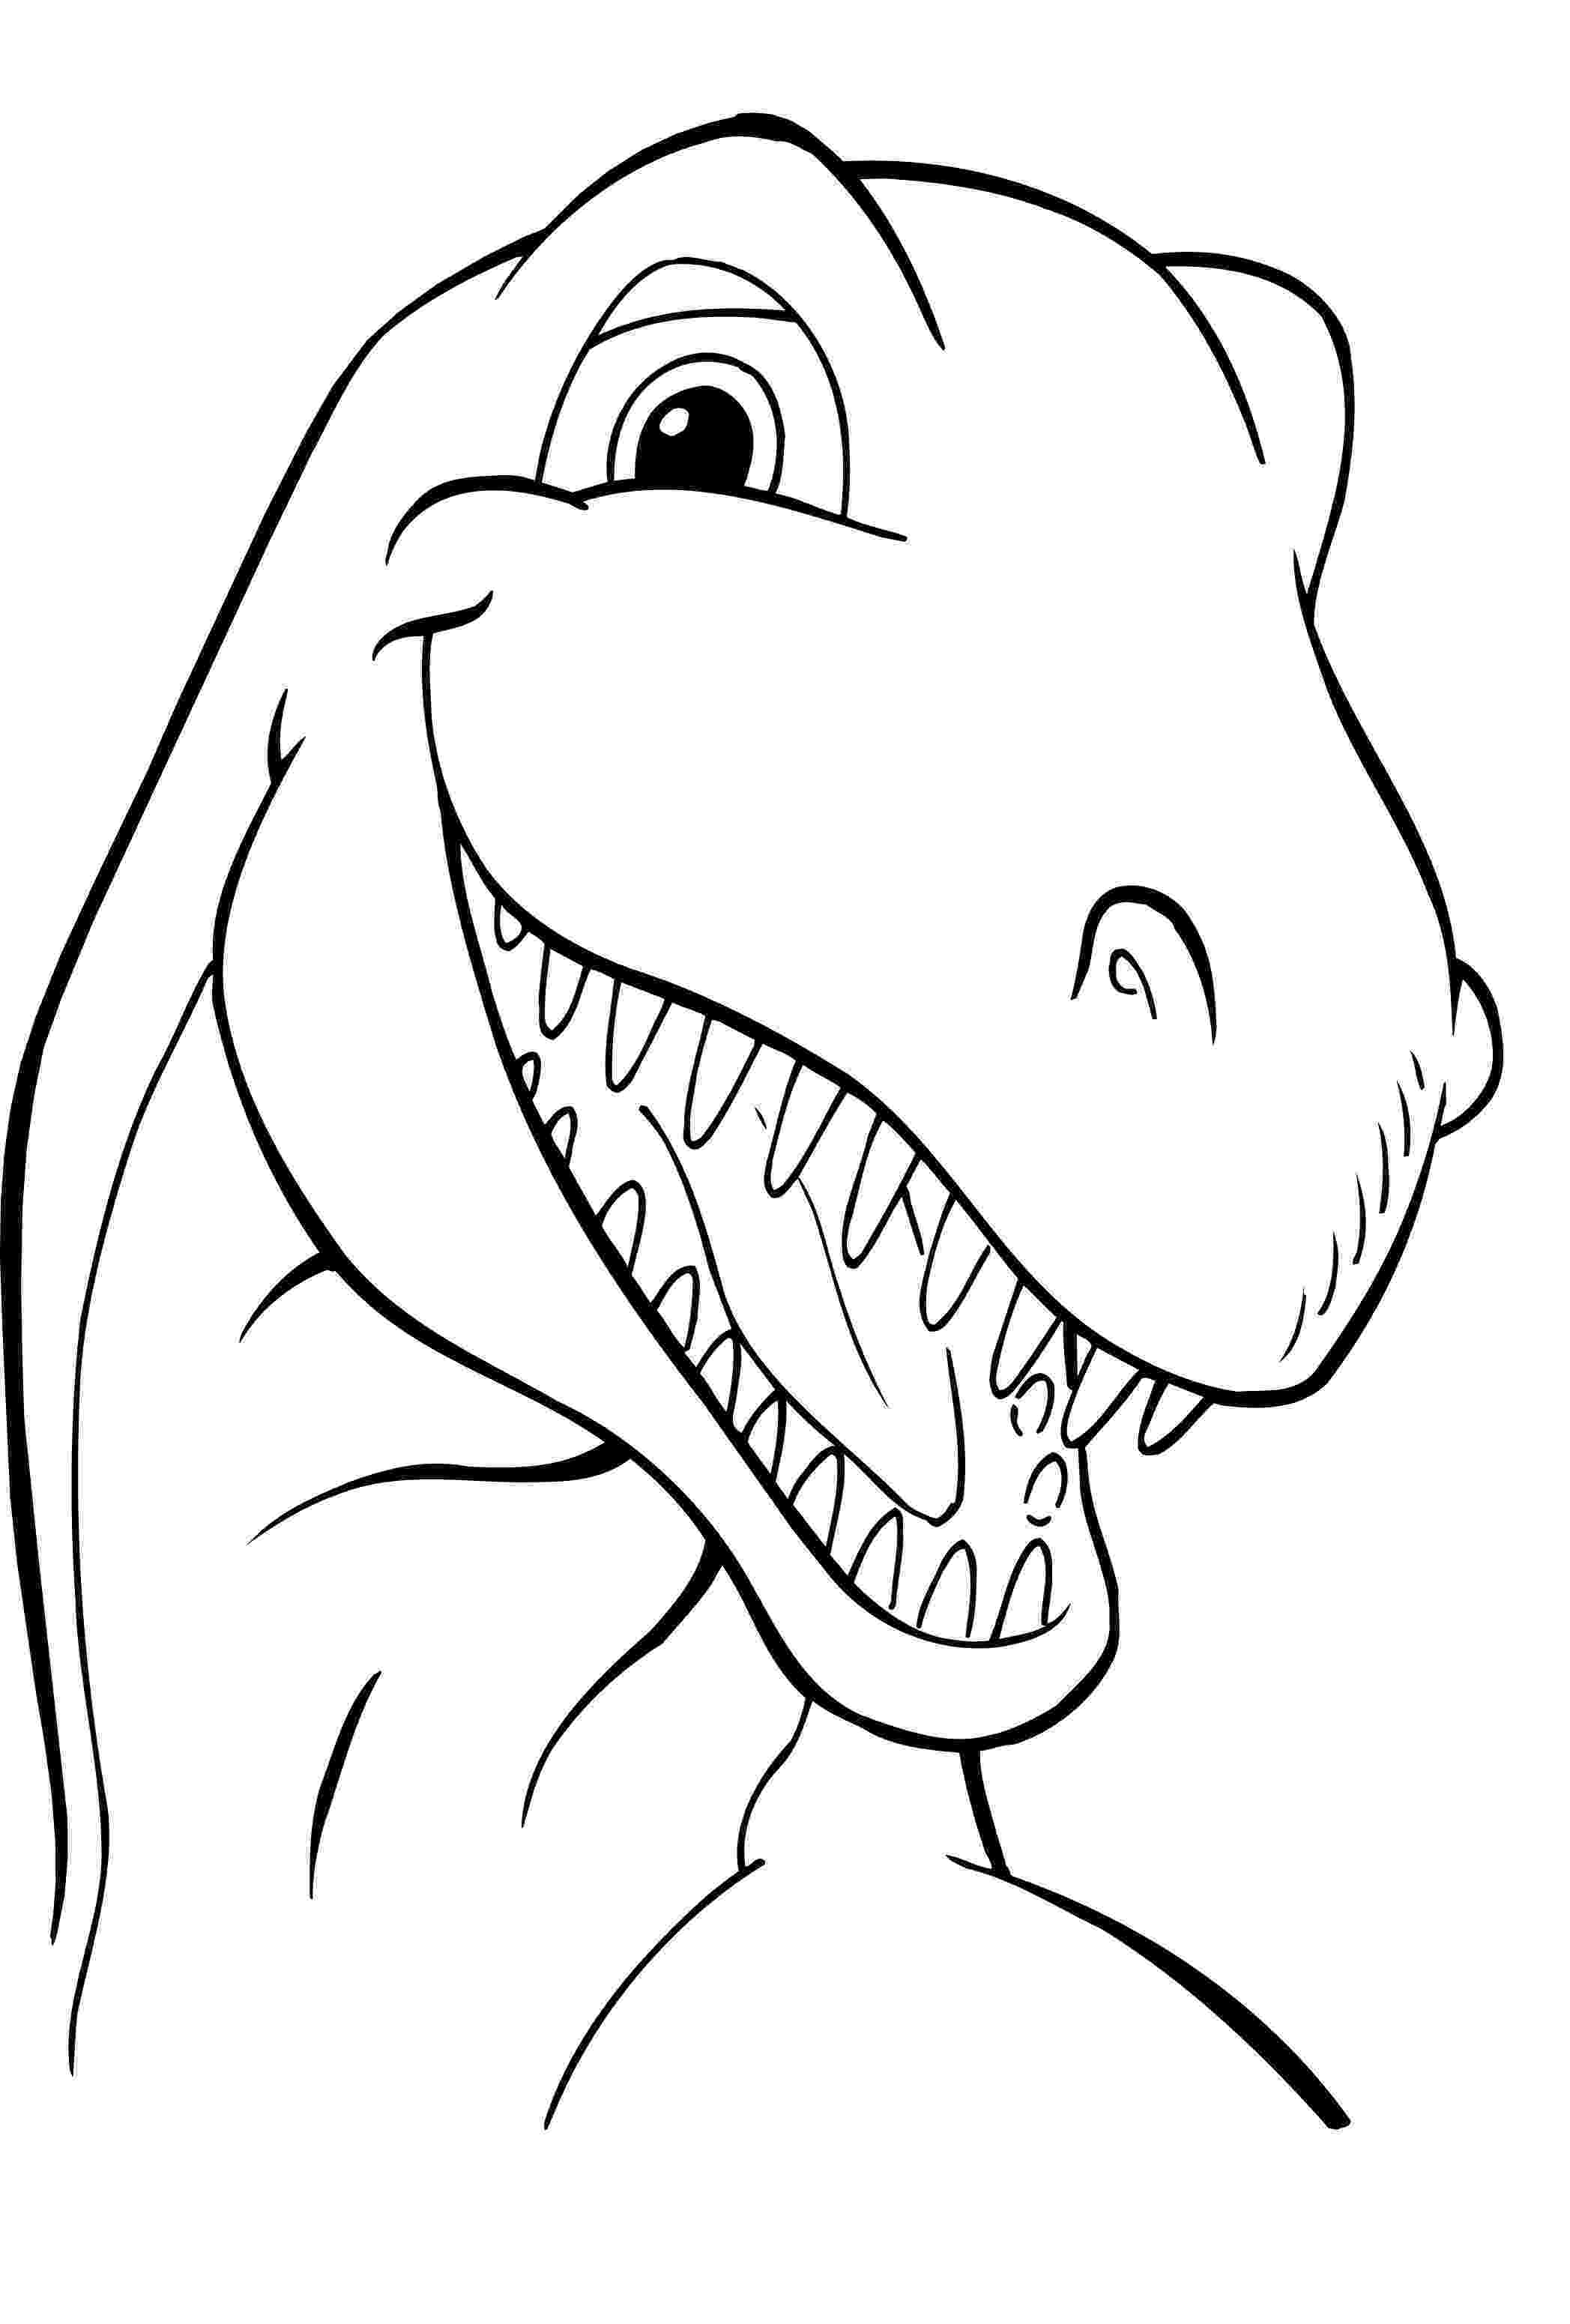 dinosaur color page free printable dinosaur coloring pages for kids color page dinosaur